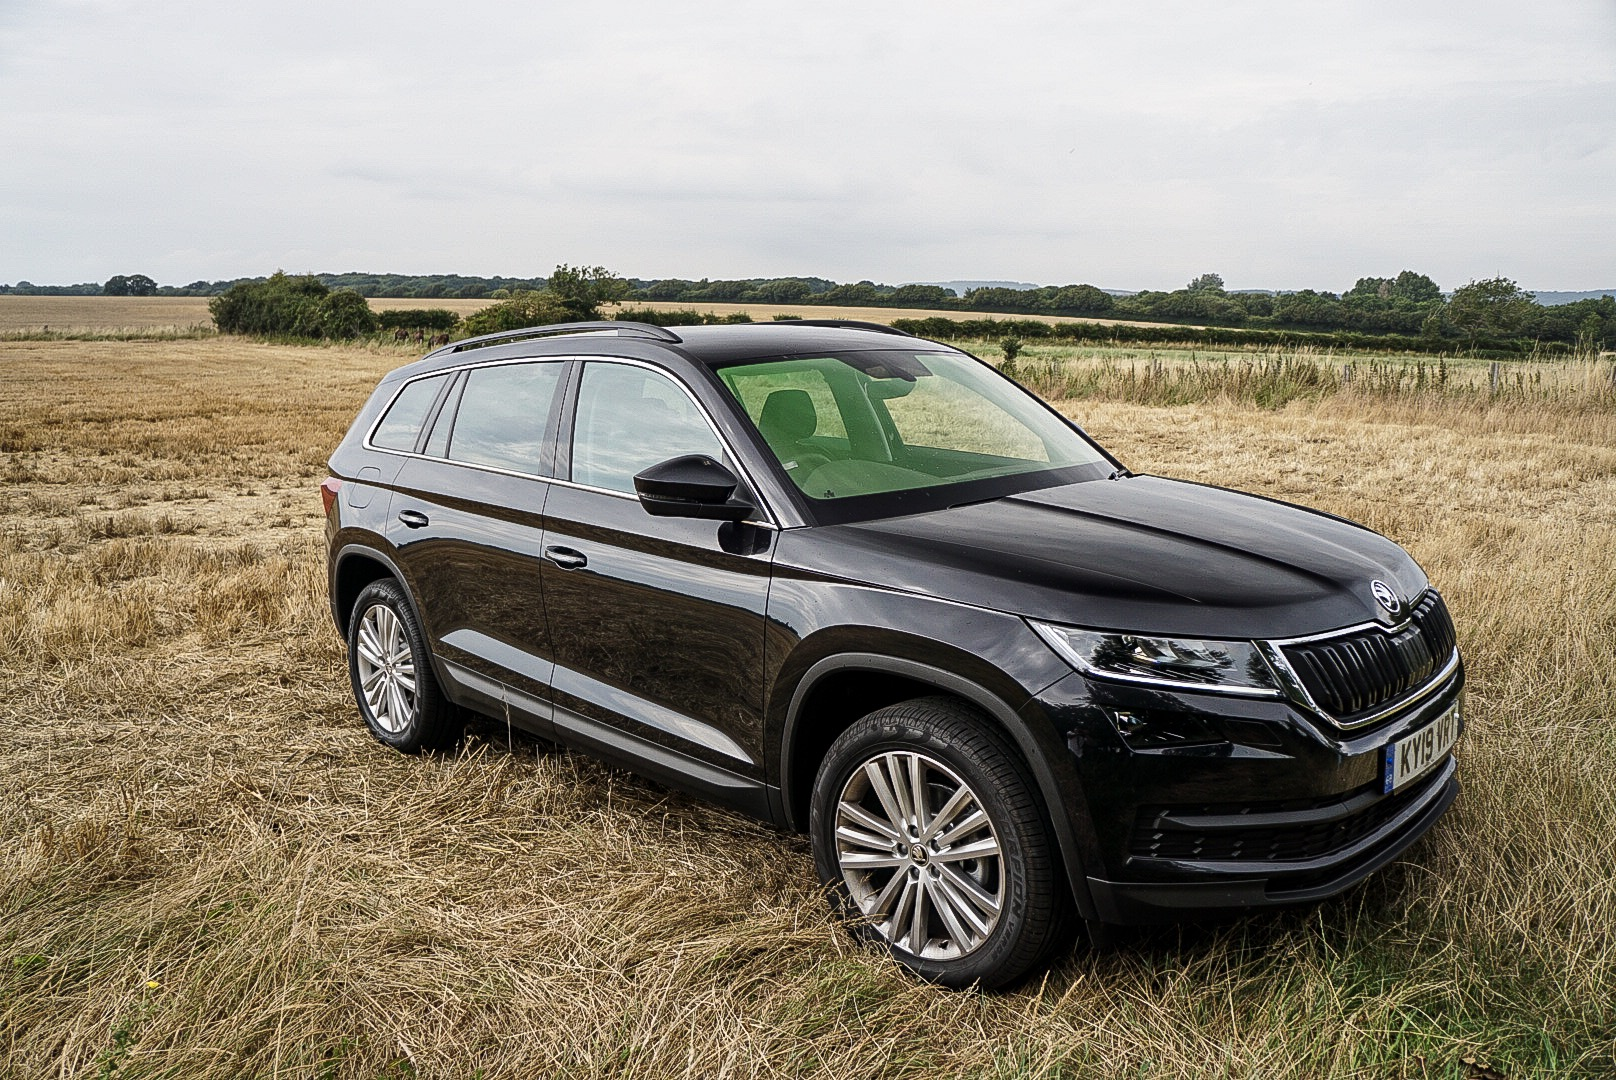 The Kodiaq is brimmed with standard equipment